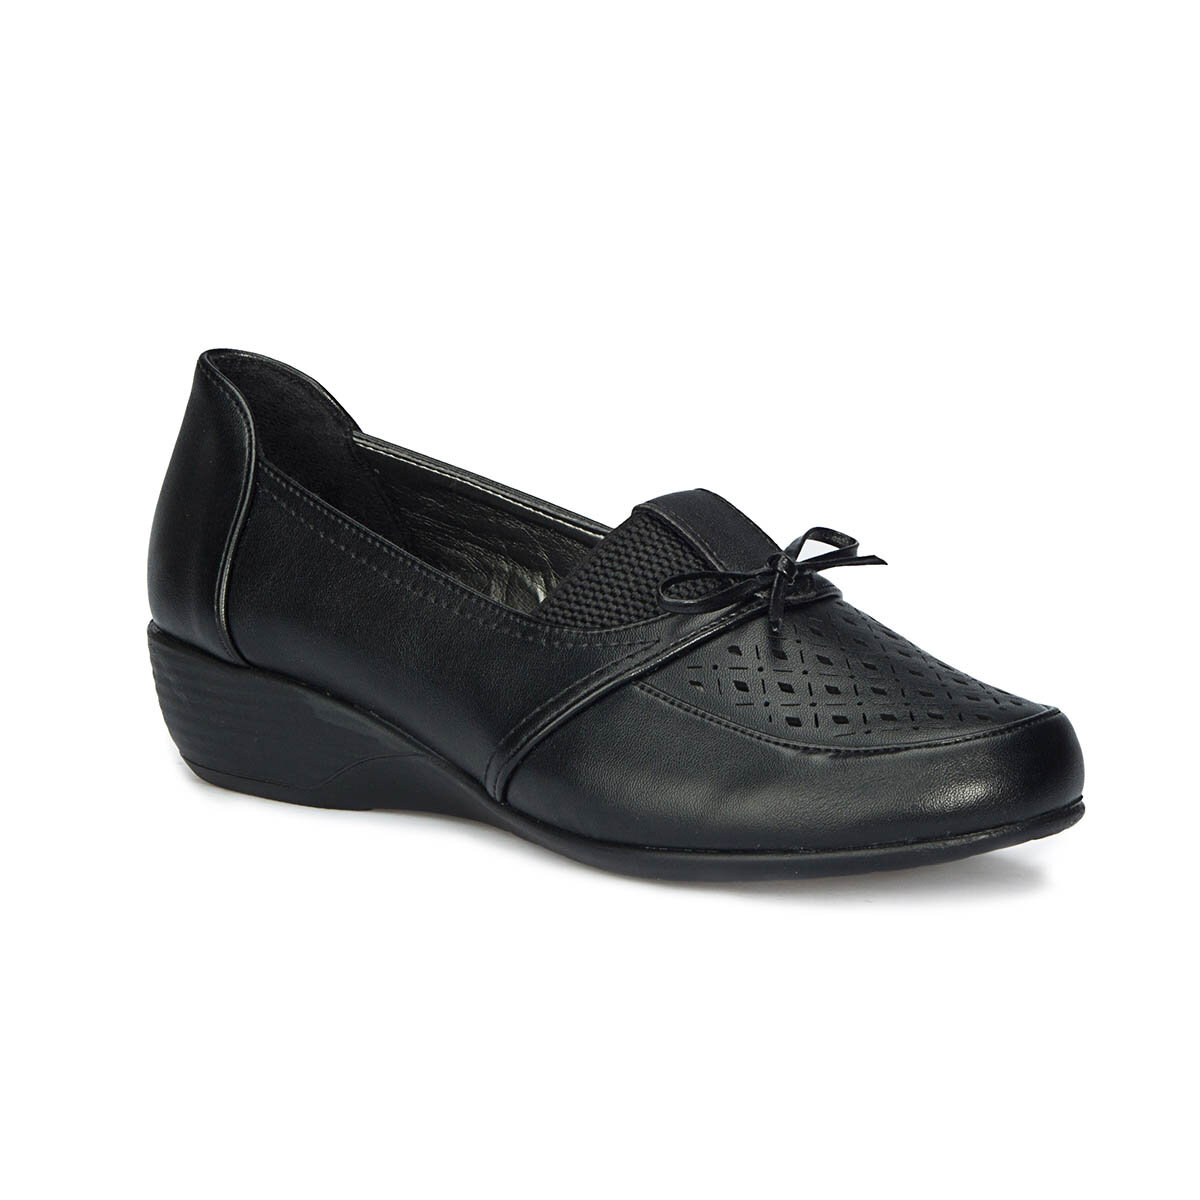 FLO 71.157275.Z Black Women 'S Classic Shoes Polaris